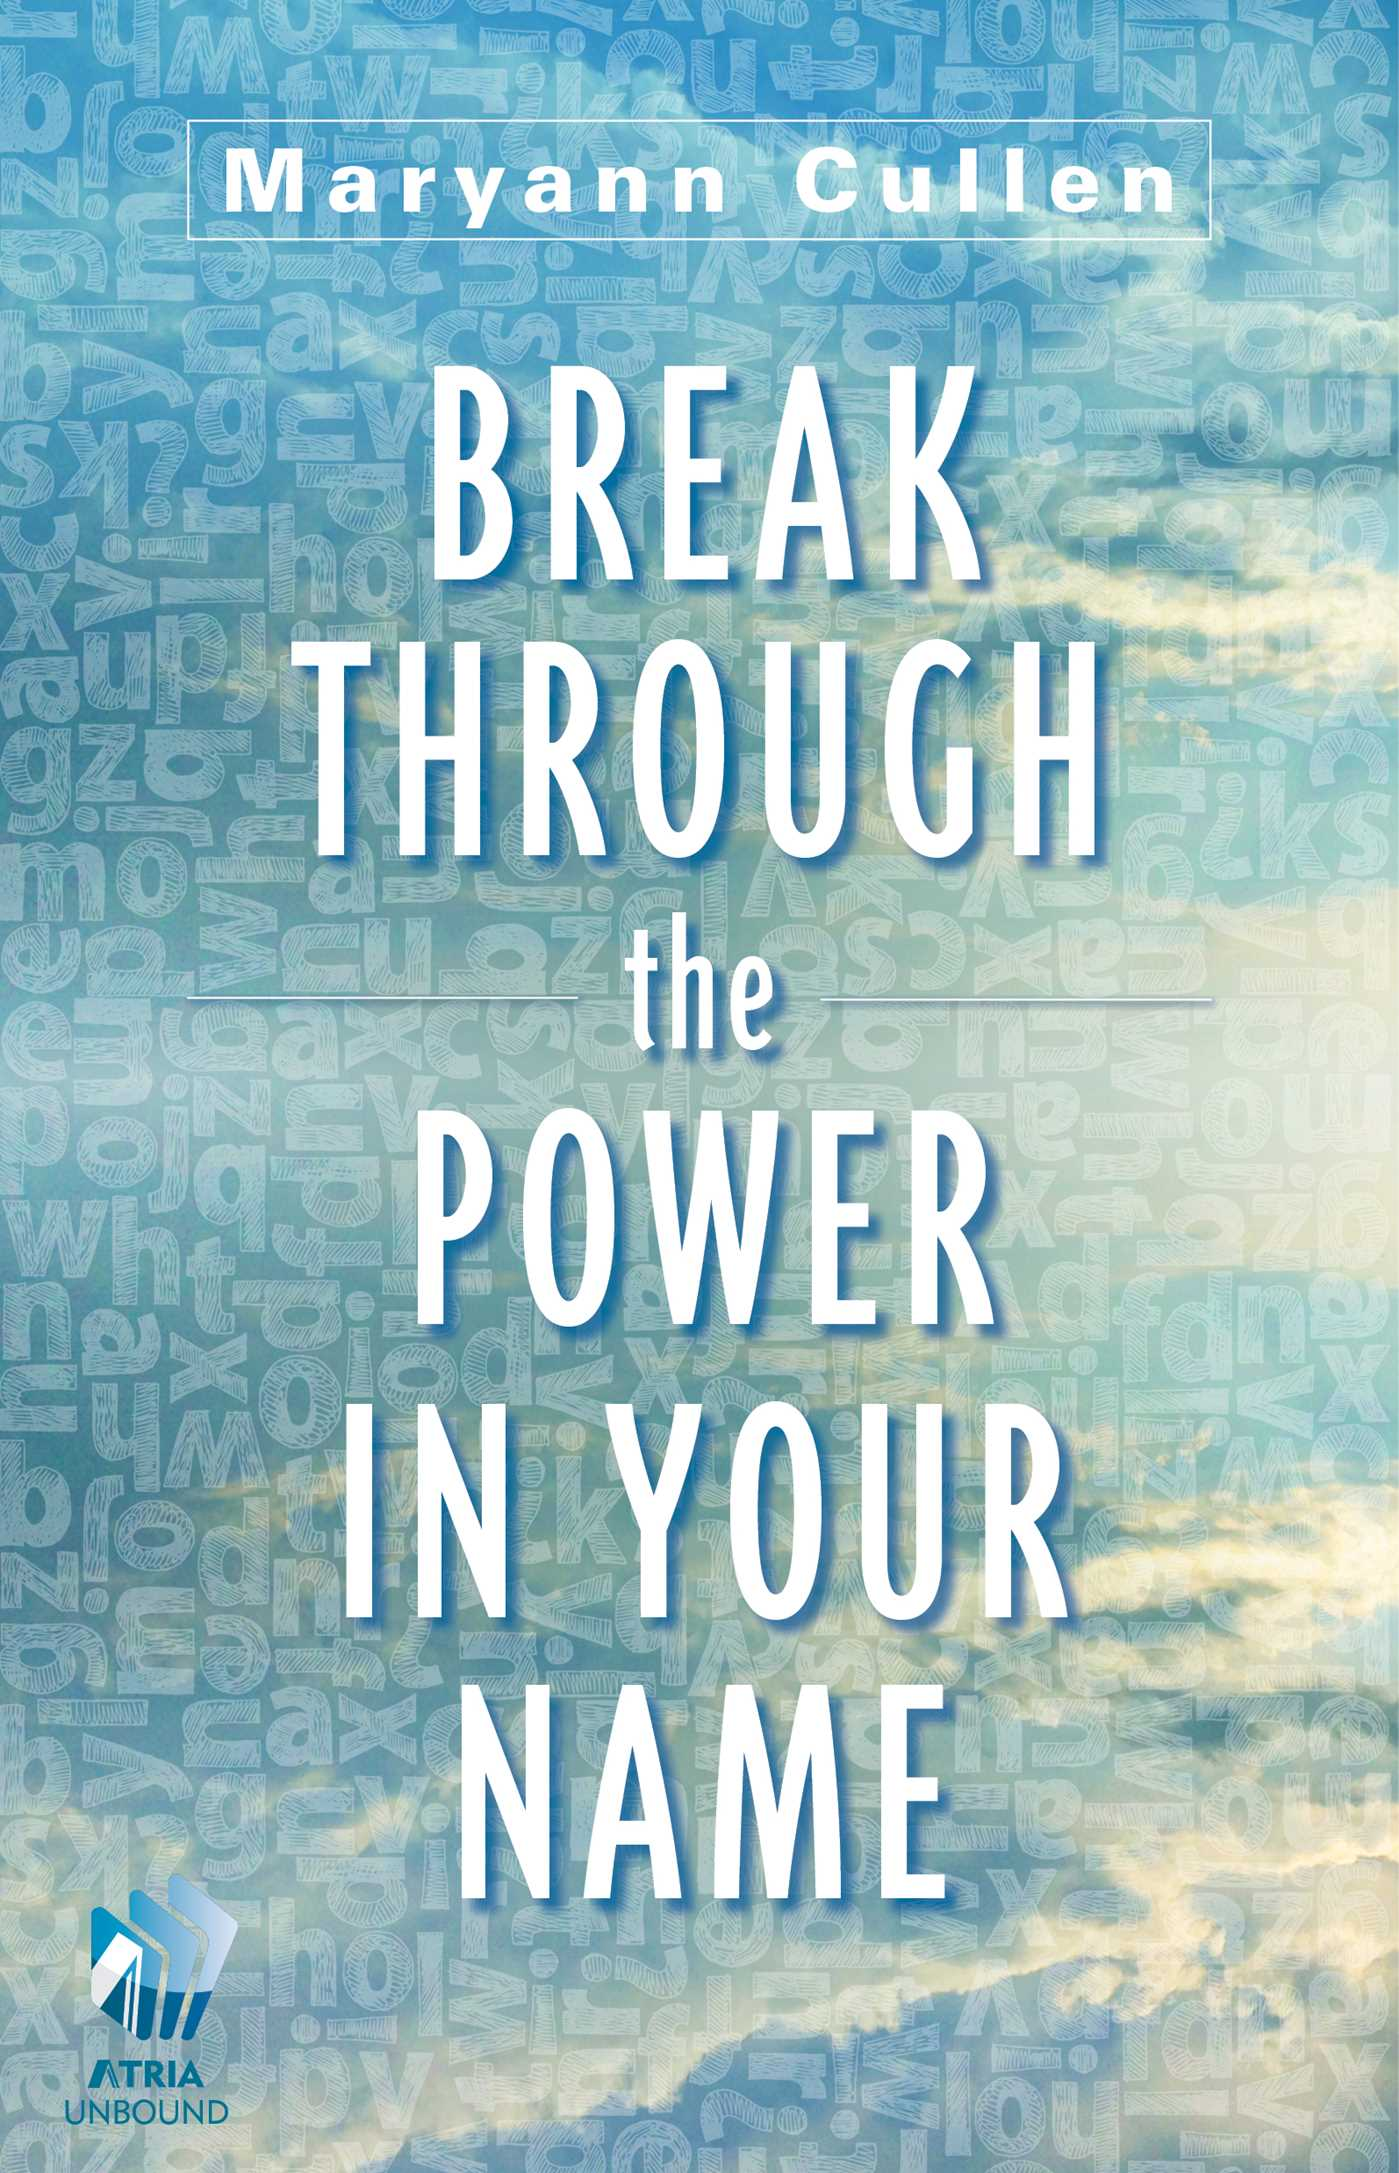 Break through the power in your name 9781476740775 hr